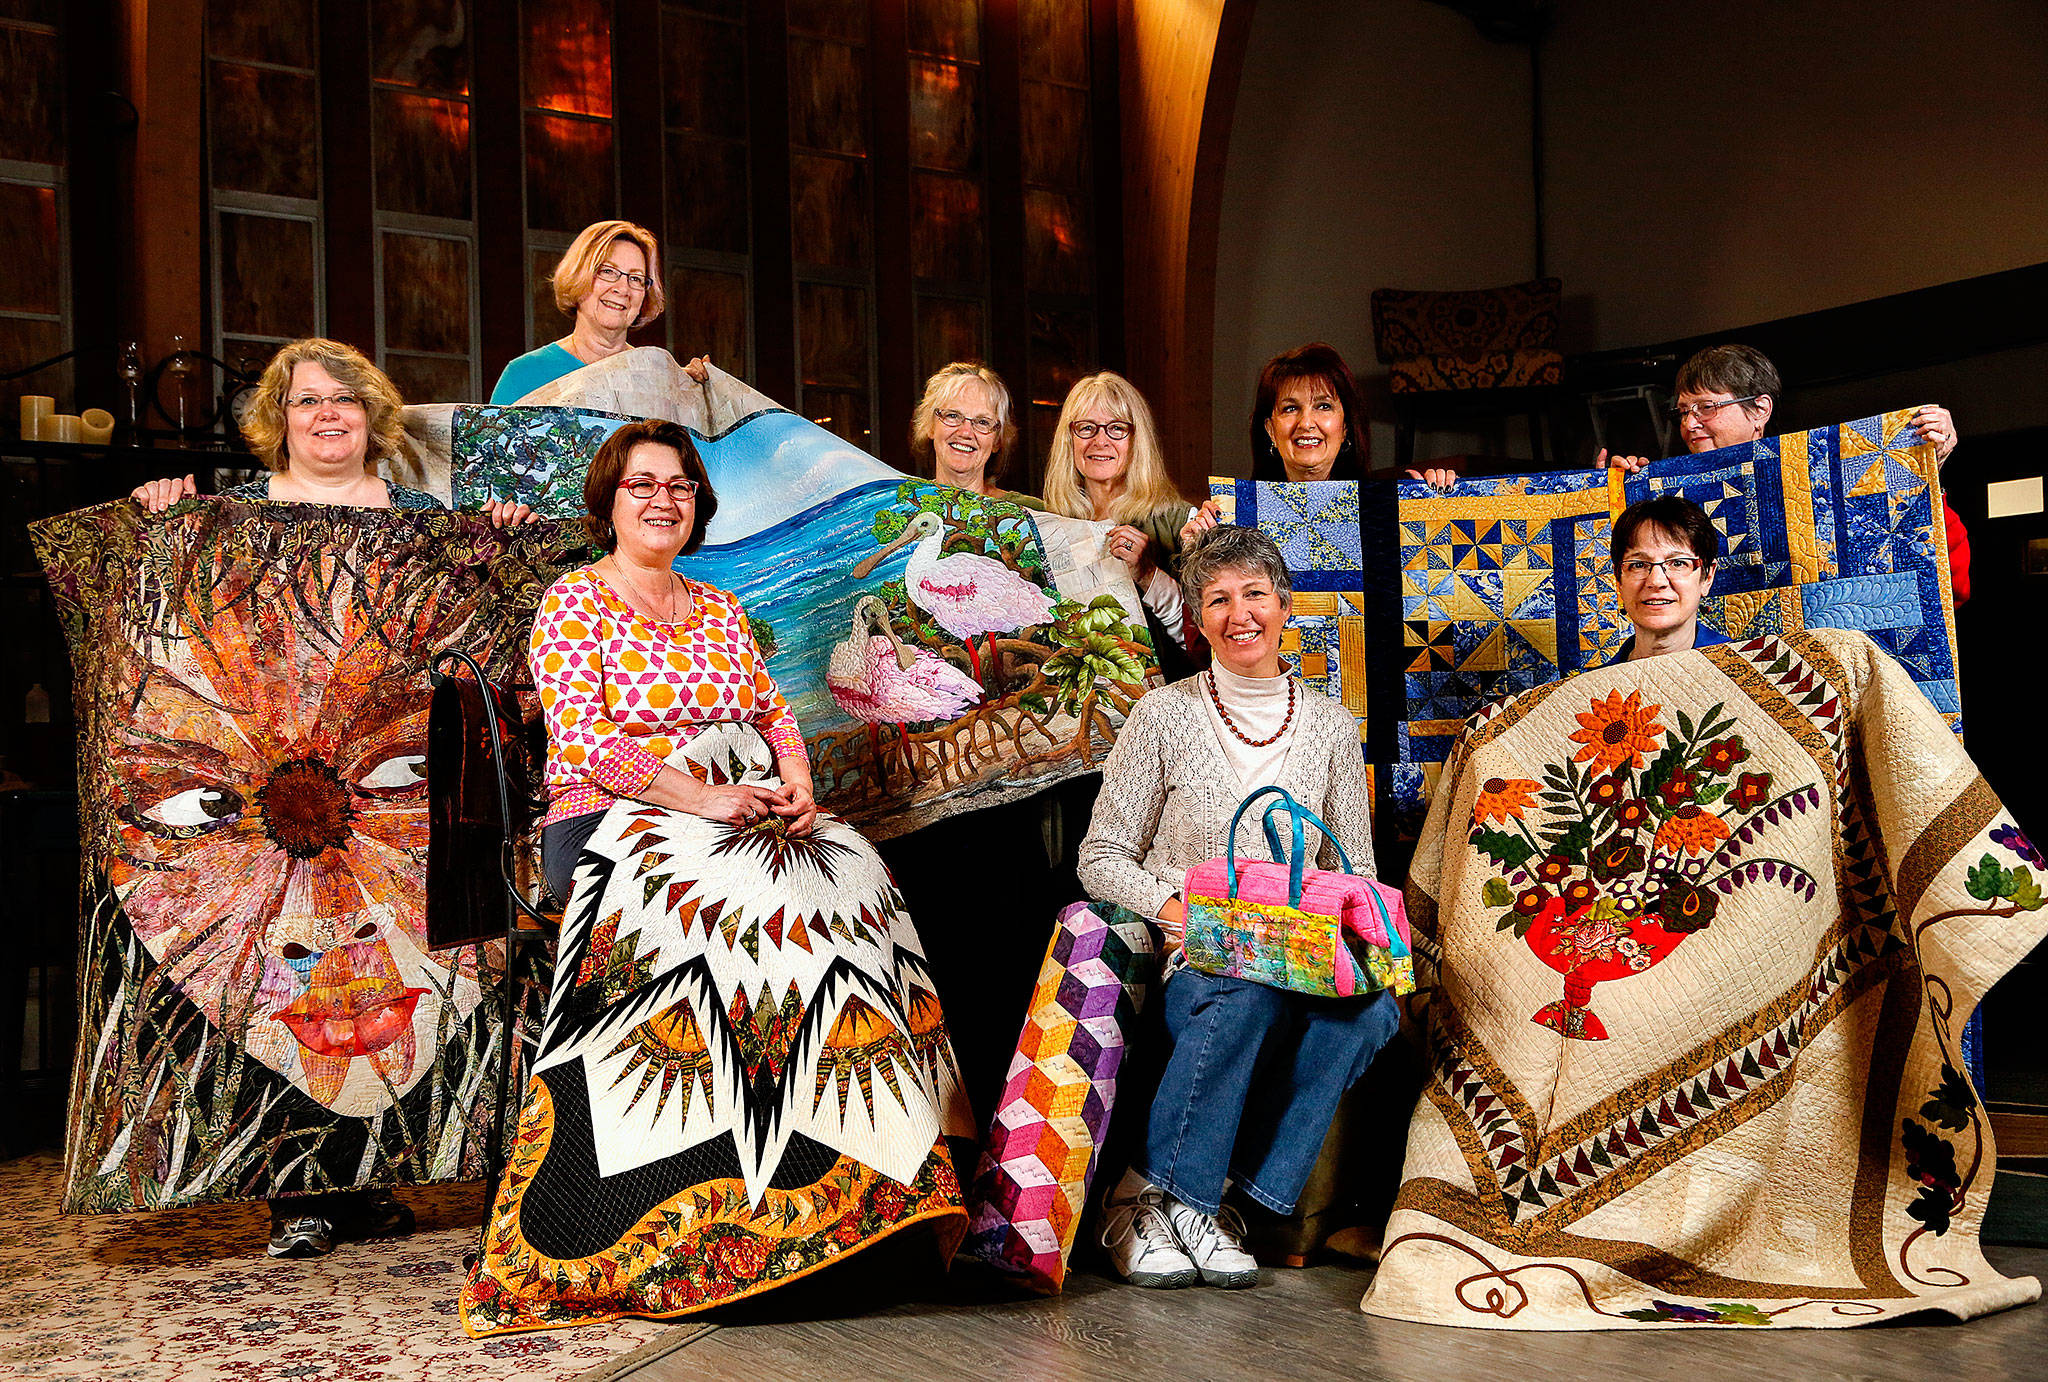 A first-ever Everett Quilt Show is scheduled for Friday and Saturday at Xfinity Arena conference center. It's presented by some extraordinarily talented quilters in the Marysville-based All in Stitches Quilt Guild. They met Tuesday at the Living Room Coffee House, bringing with them a few masterpieces. From left are Tammy Mohiswarnath, Grace Hawley, Becky Ray, Kathy McNeil, Cathryn Scott, Shawna Gould, Darlene McCourt, Vicki Hesseltine and Shirley Rock. (Dan Bates / The Herald)